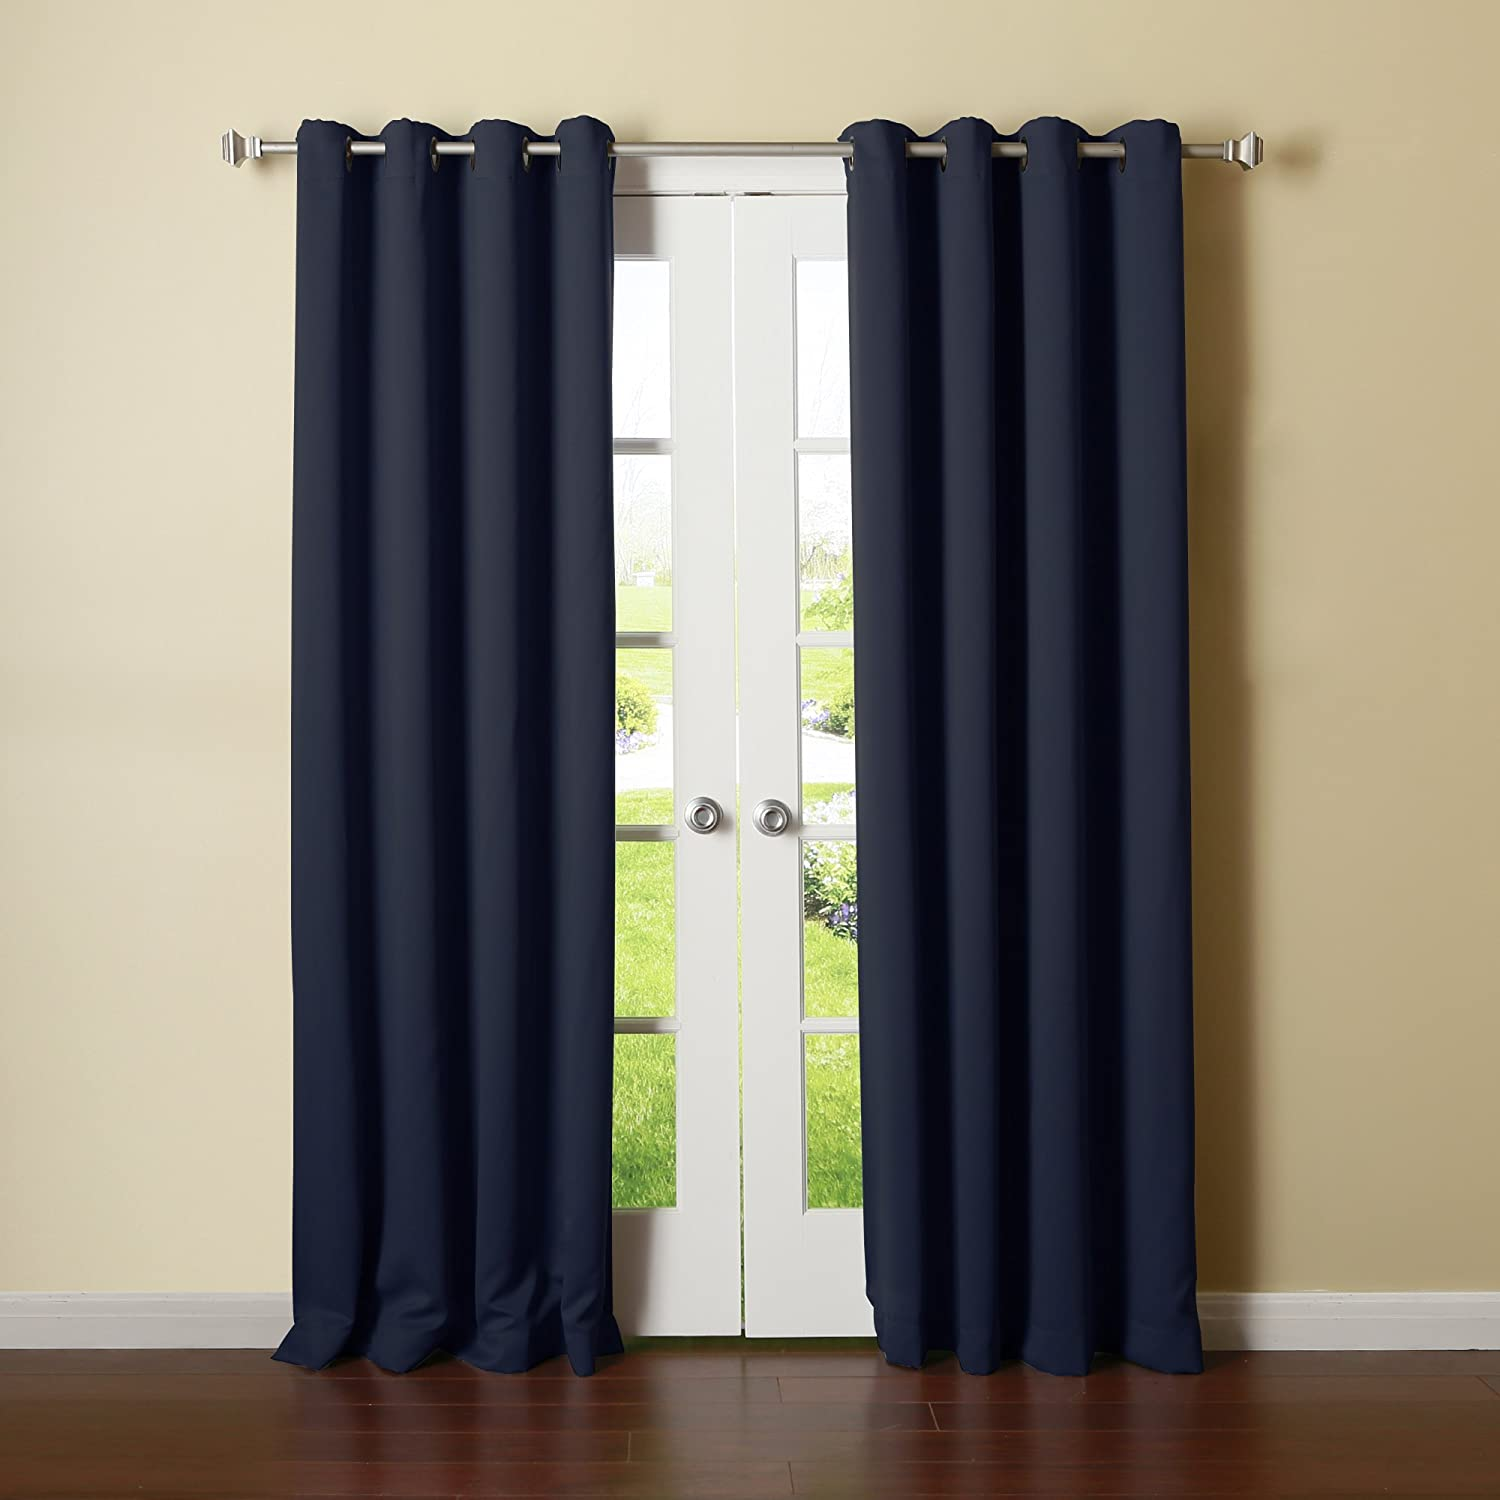 curtain curtains drapes beautiful soundproof pertaining thermal amazon target blackout coral to inch table